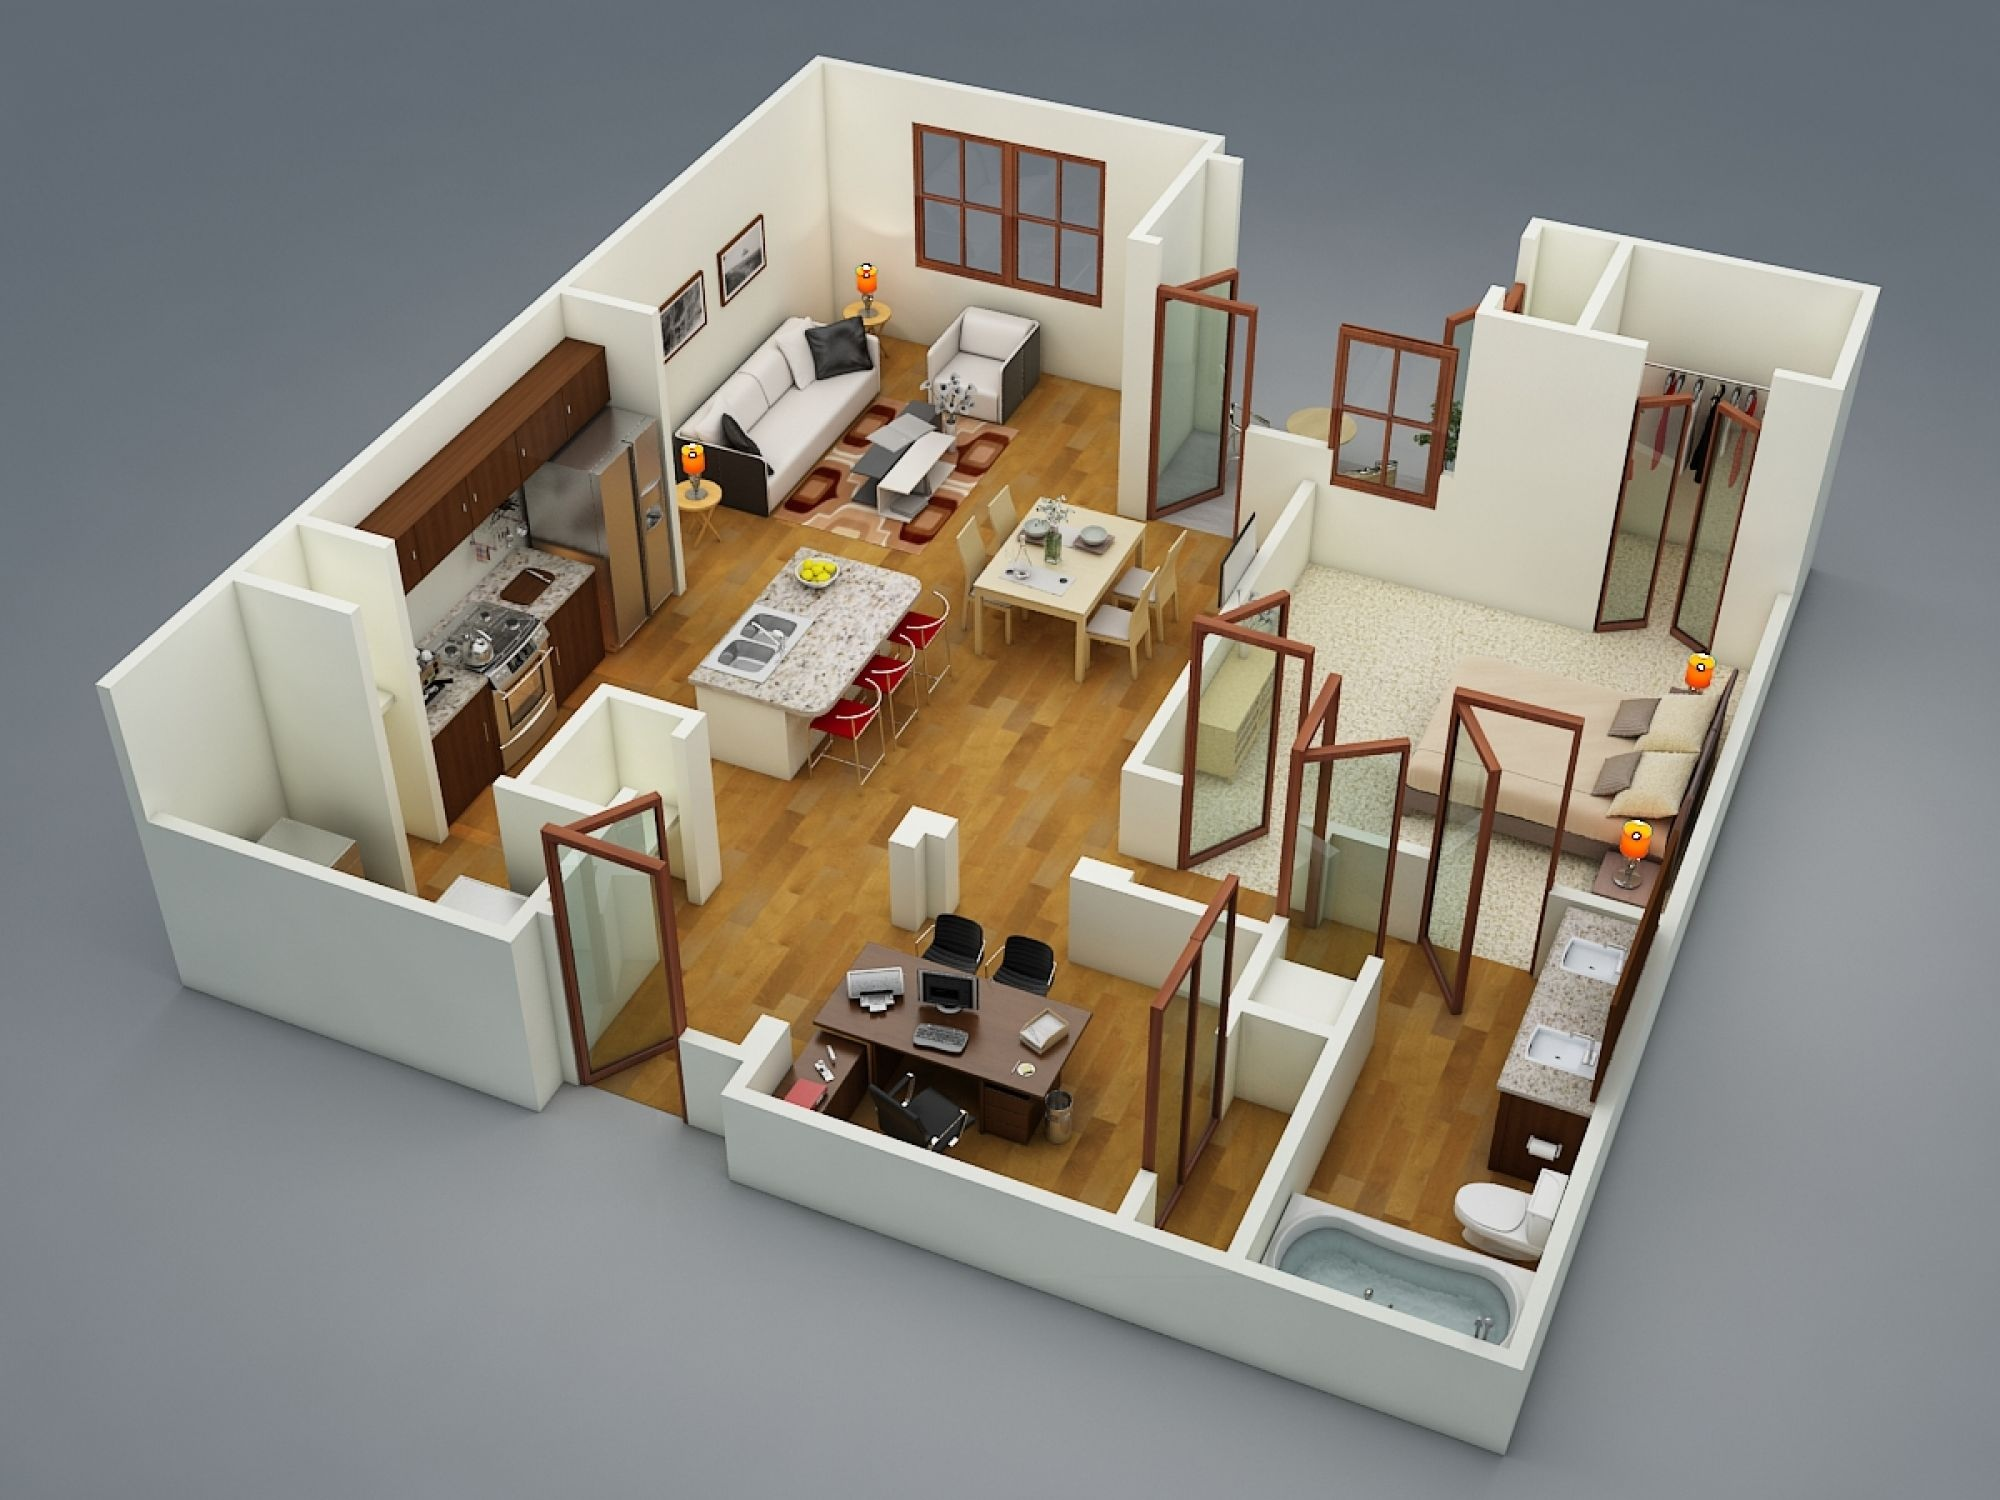 1 bedroom apartment house plans Home design and comfort